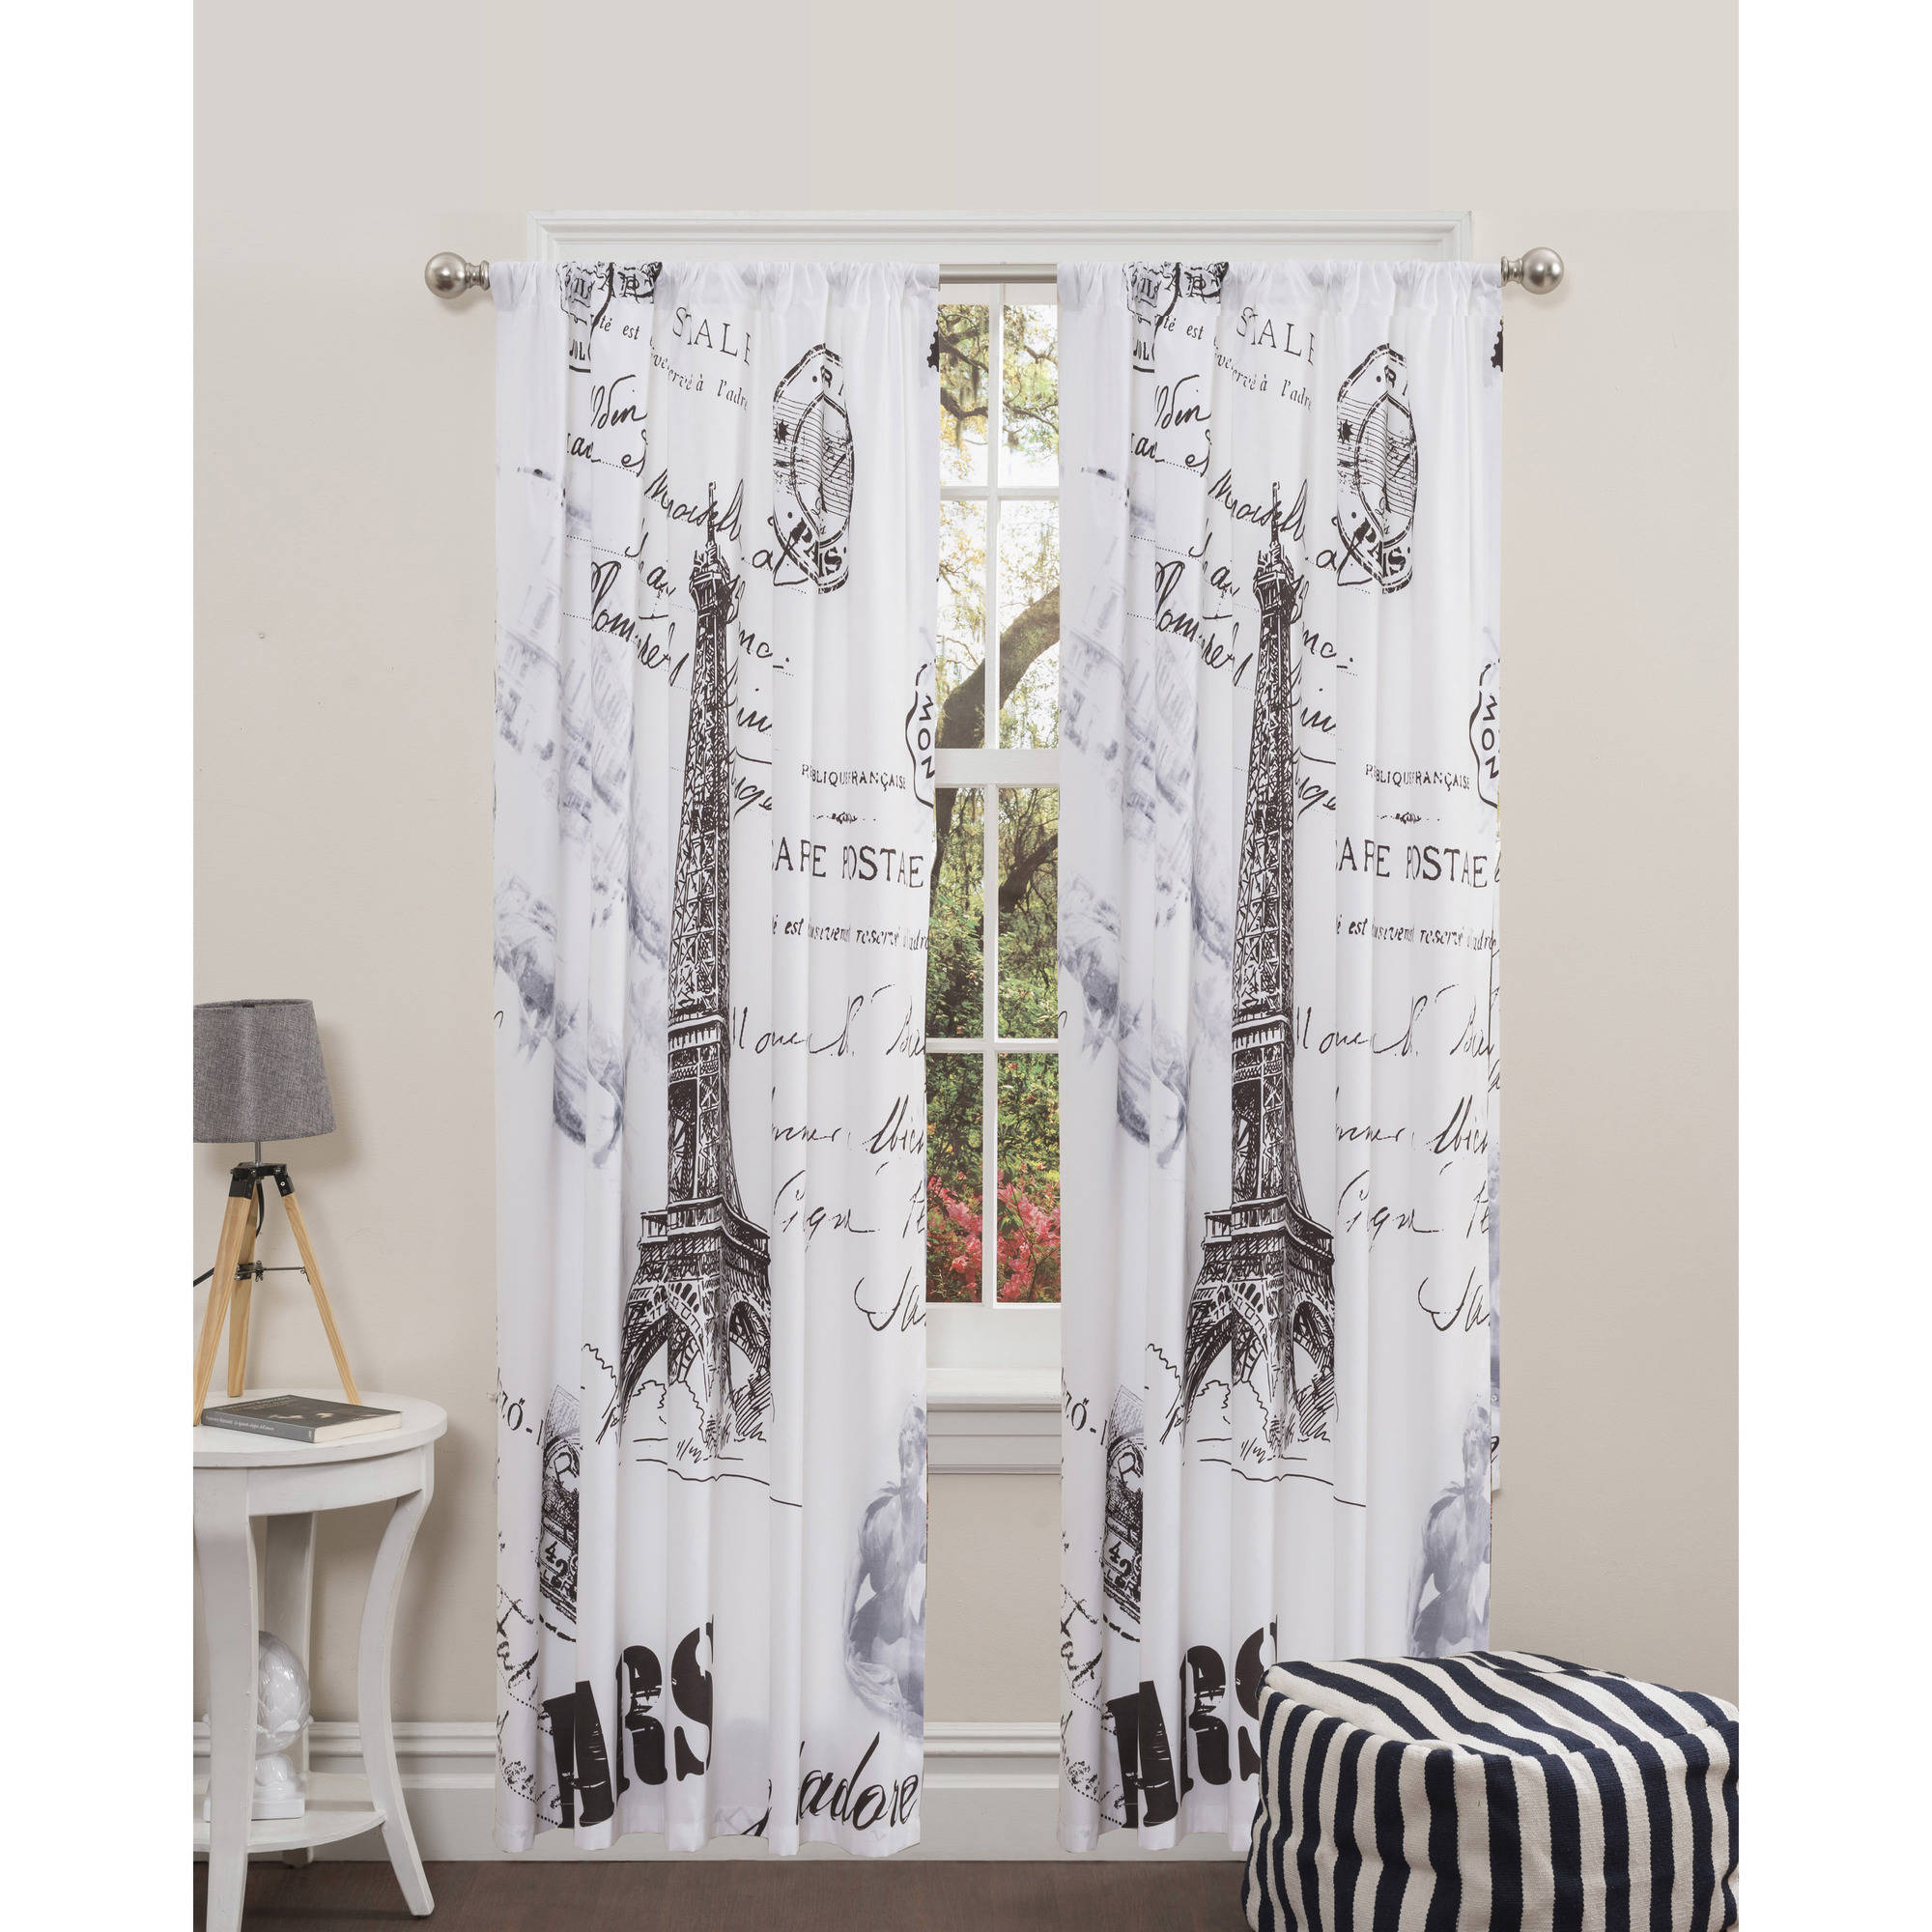 New Paris Curtain Panel Home Decor Curtains Window Treatments Room Bedroom